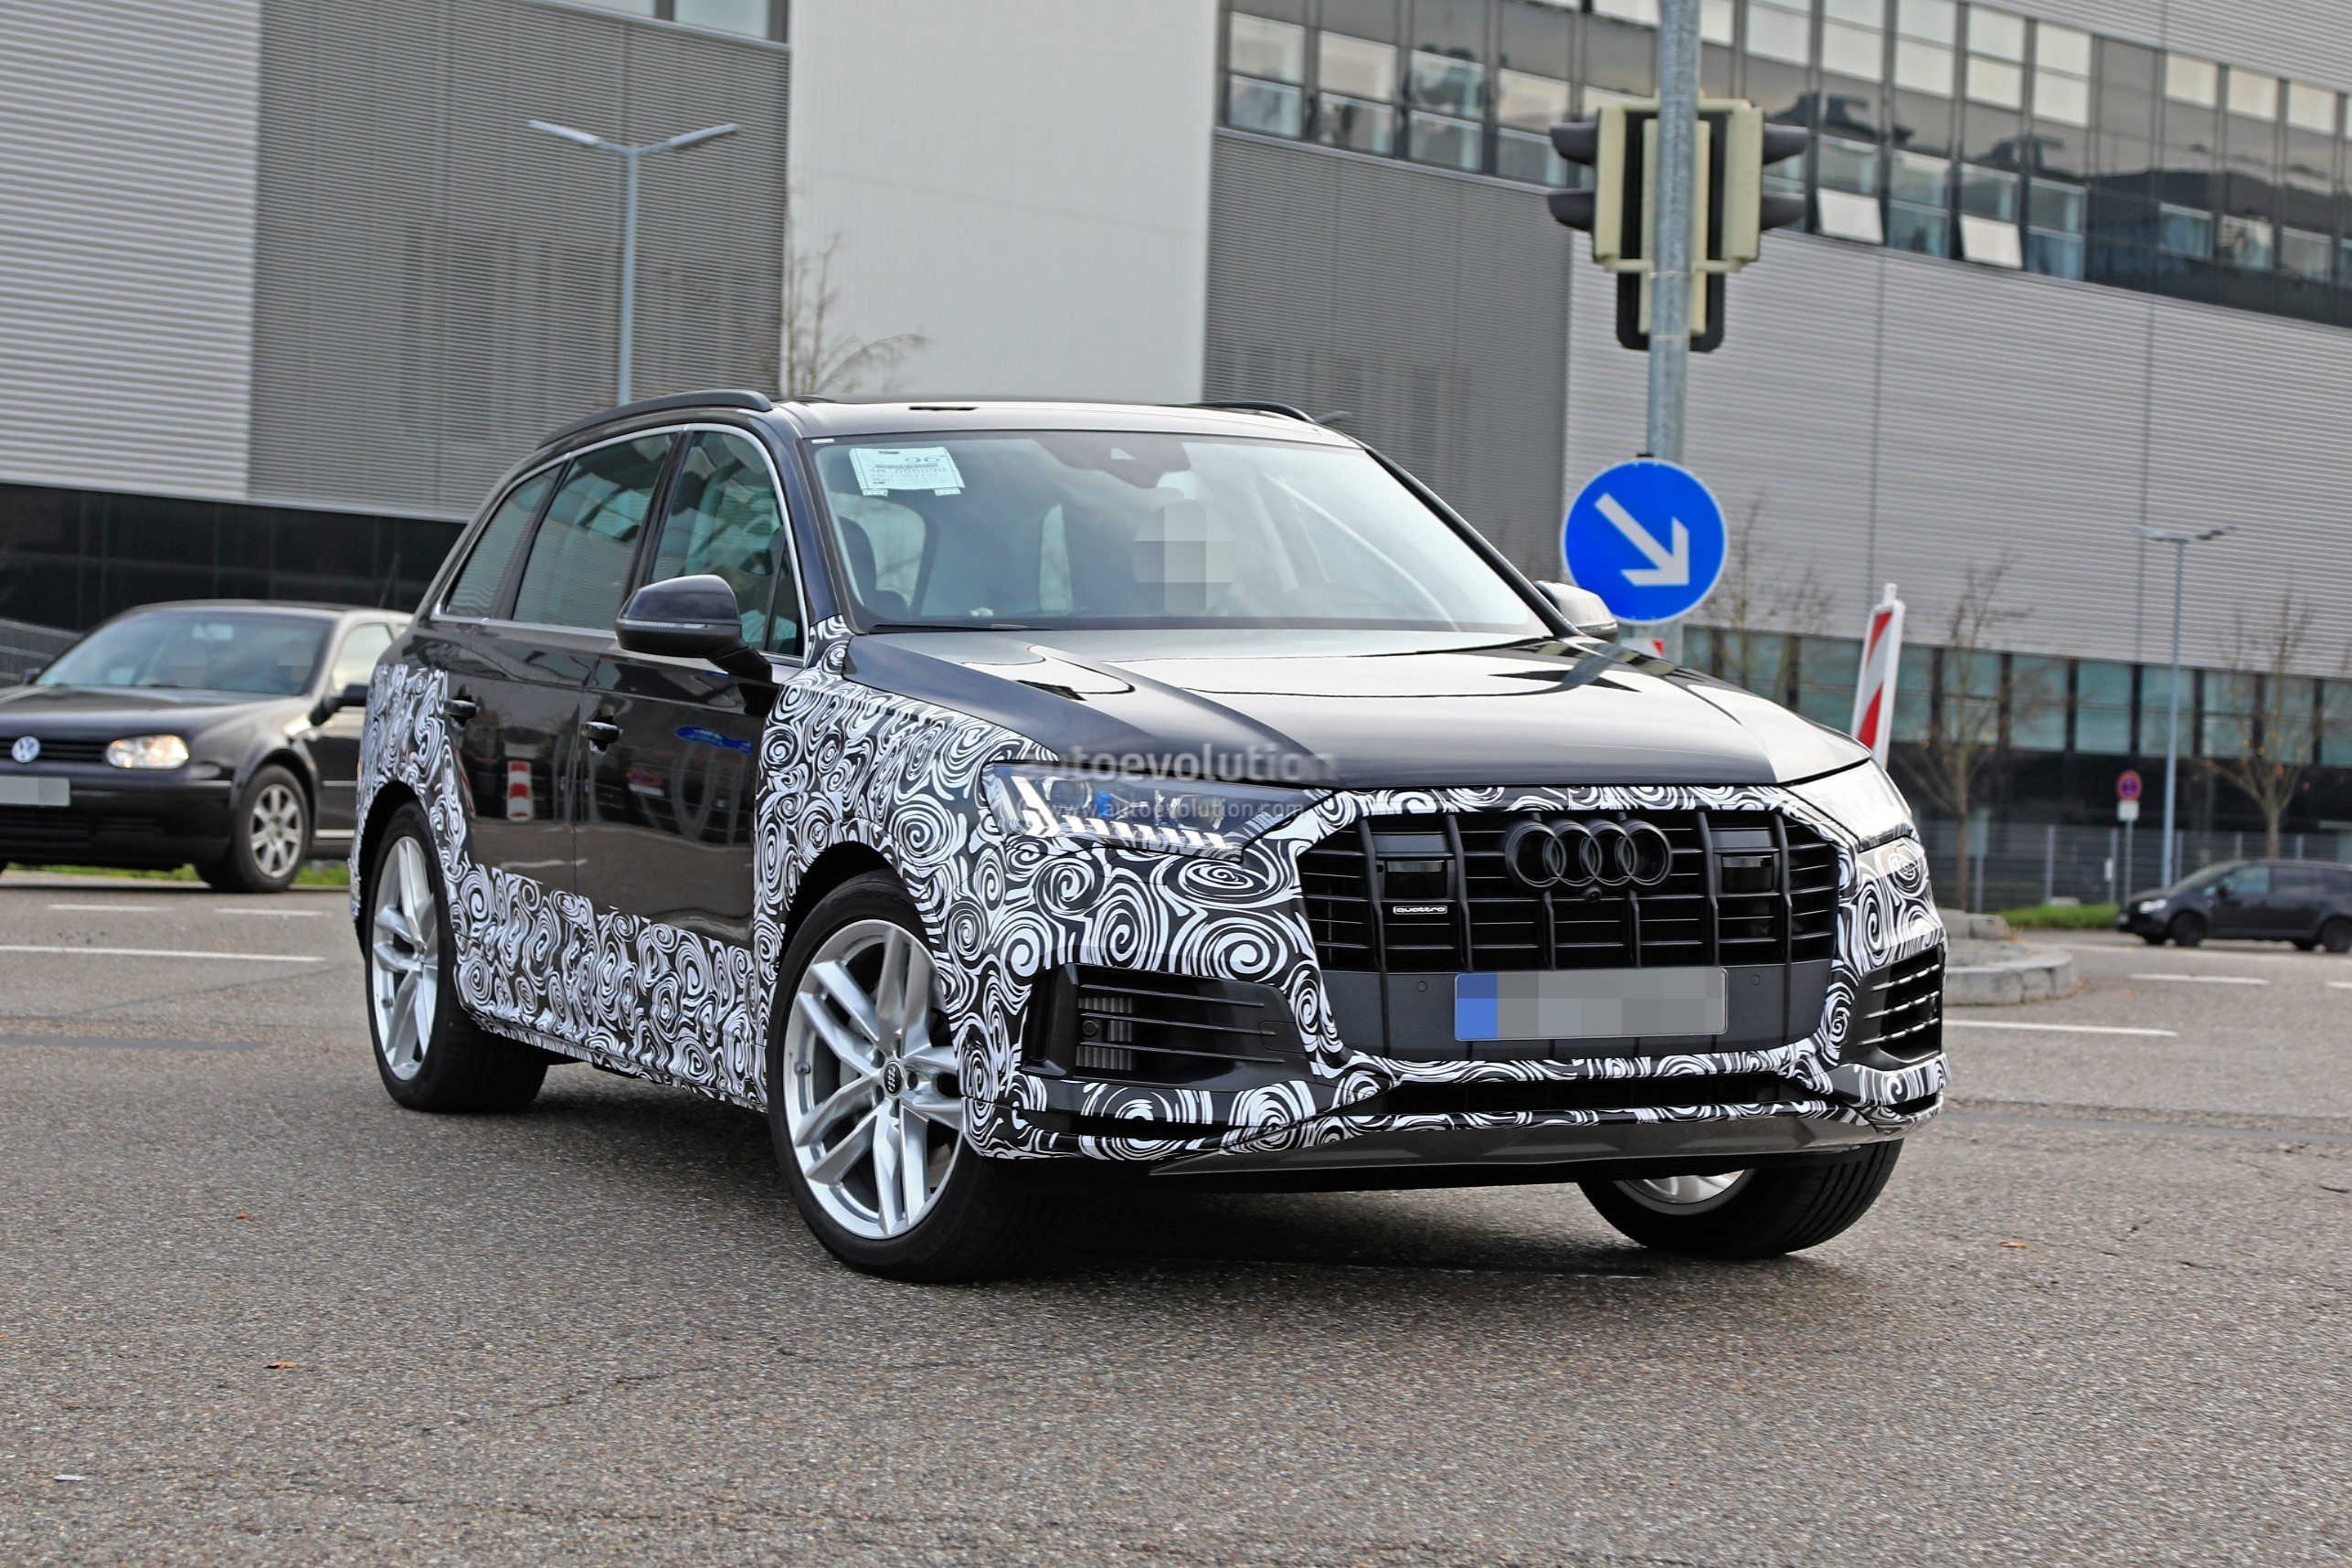 Audi Rs4 2018 >> 2020 Audi Q7 Facelift Spied, Features Dual-Screen Infotainment System From Q8 - autoevolution